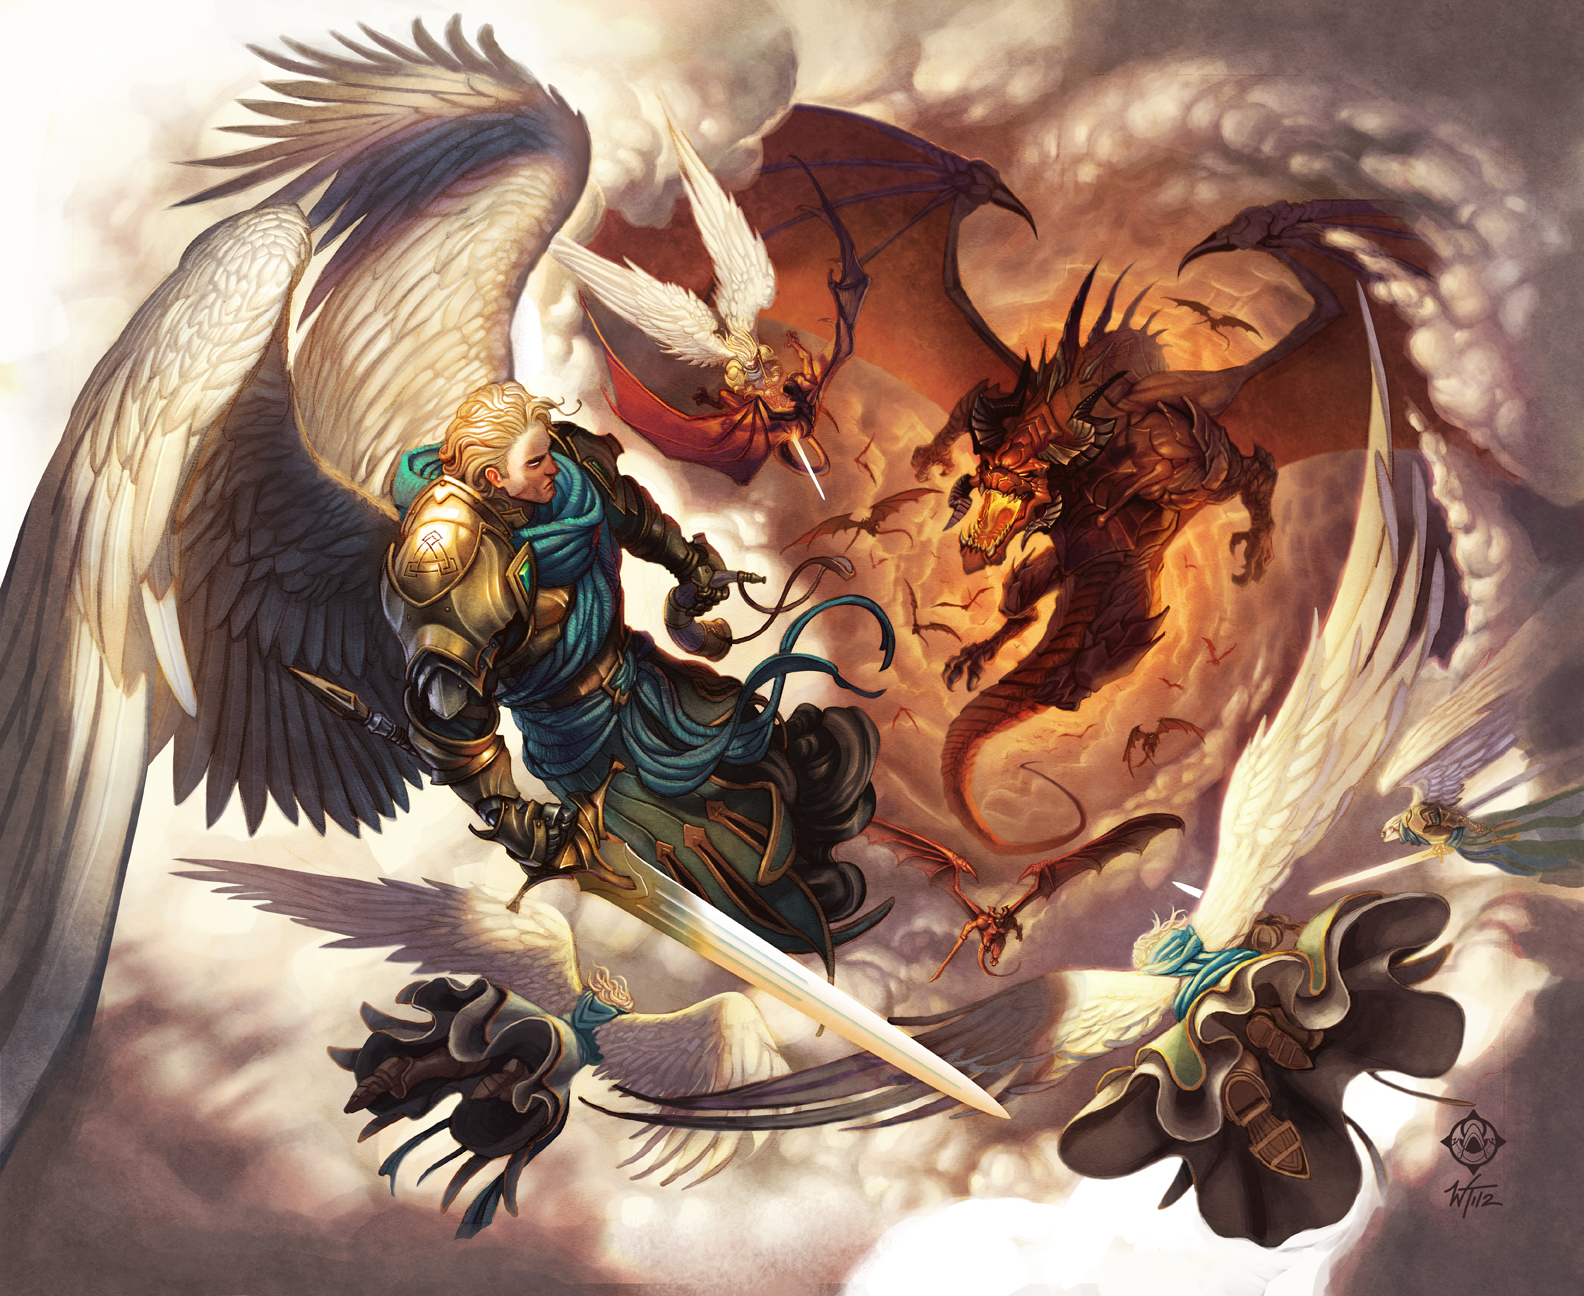 Fire fighter tattoo pinterest - The Angels Sanctuary Angel Heaven Armies Against Dragon Lord